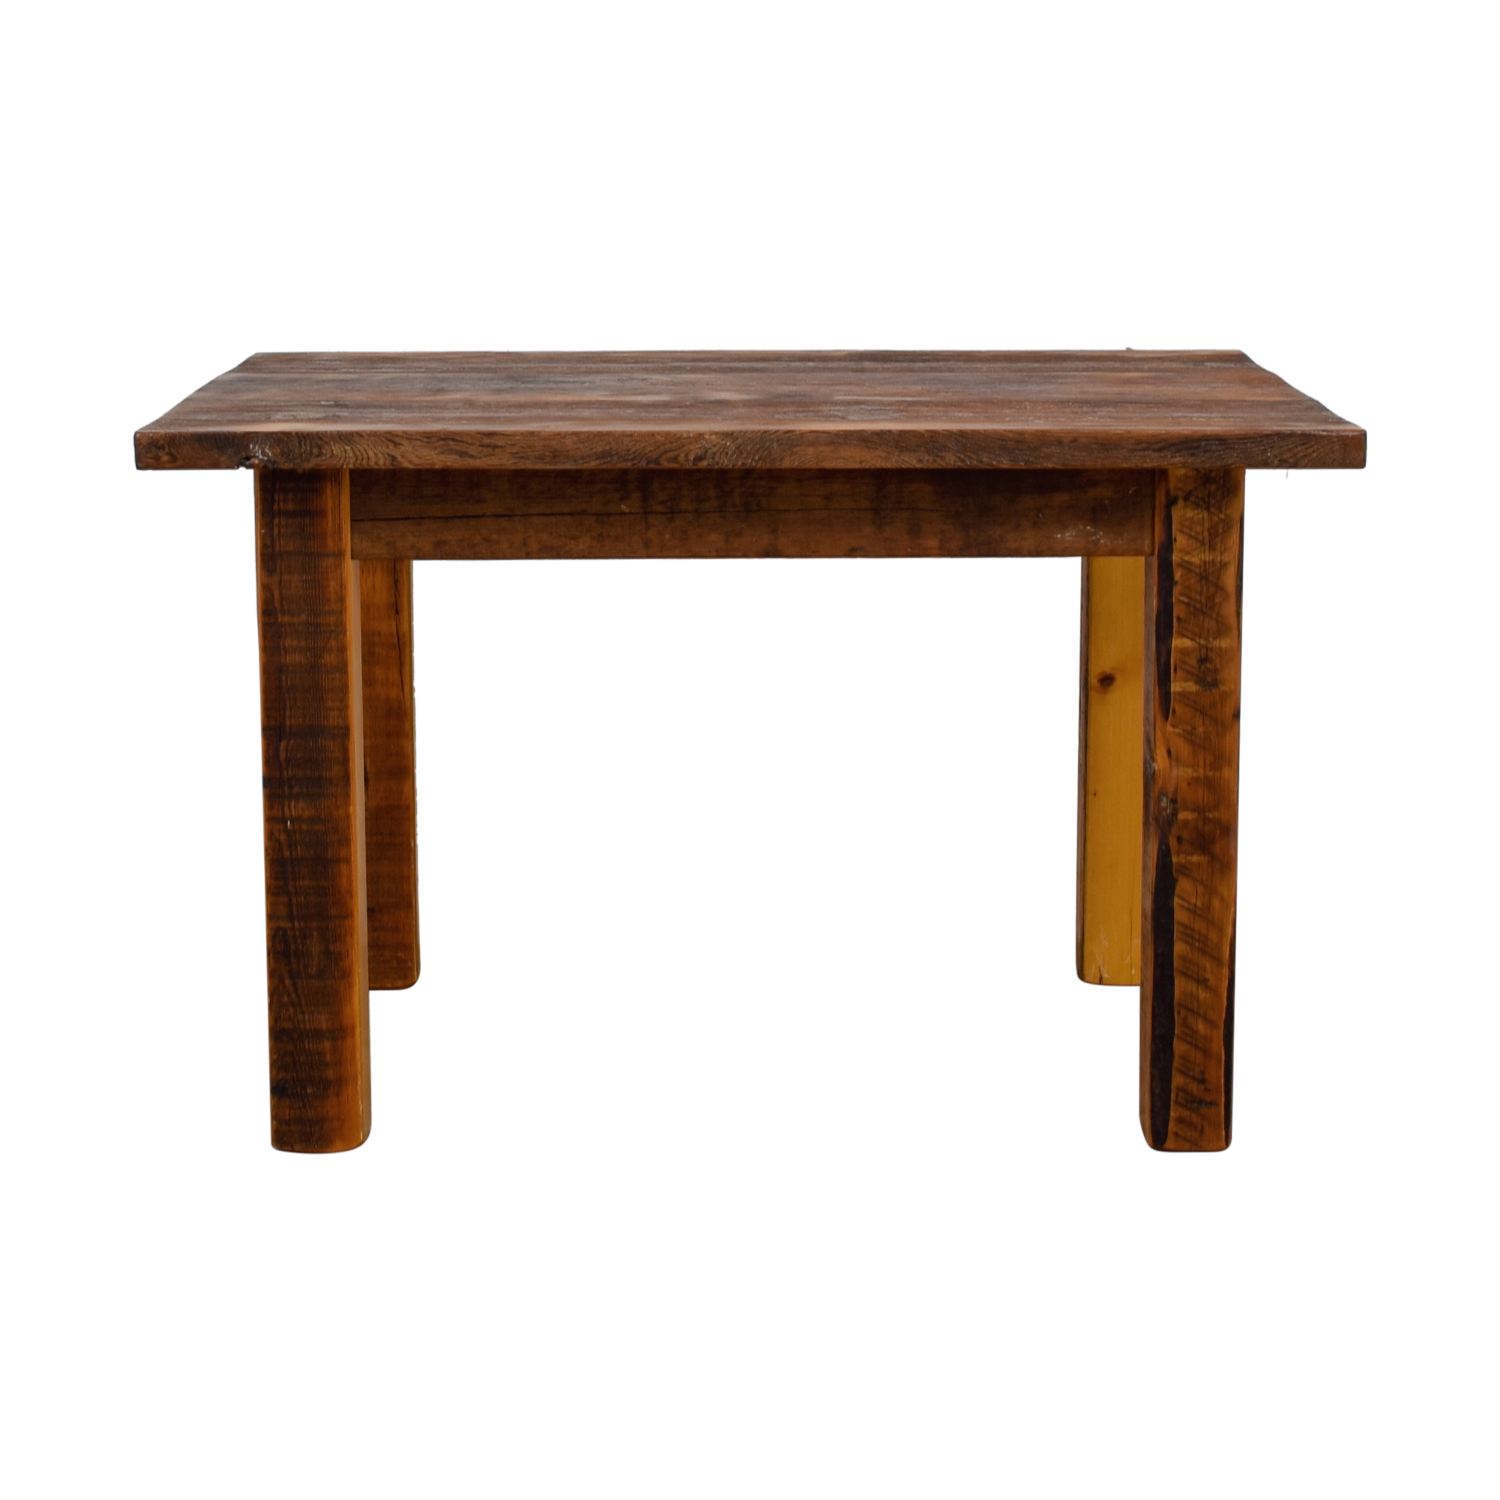 Rustic Wood Dining Table dimensions